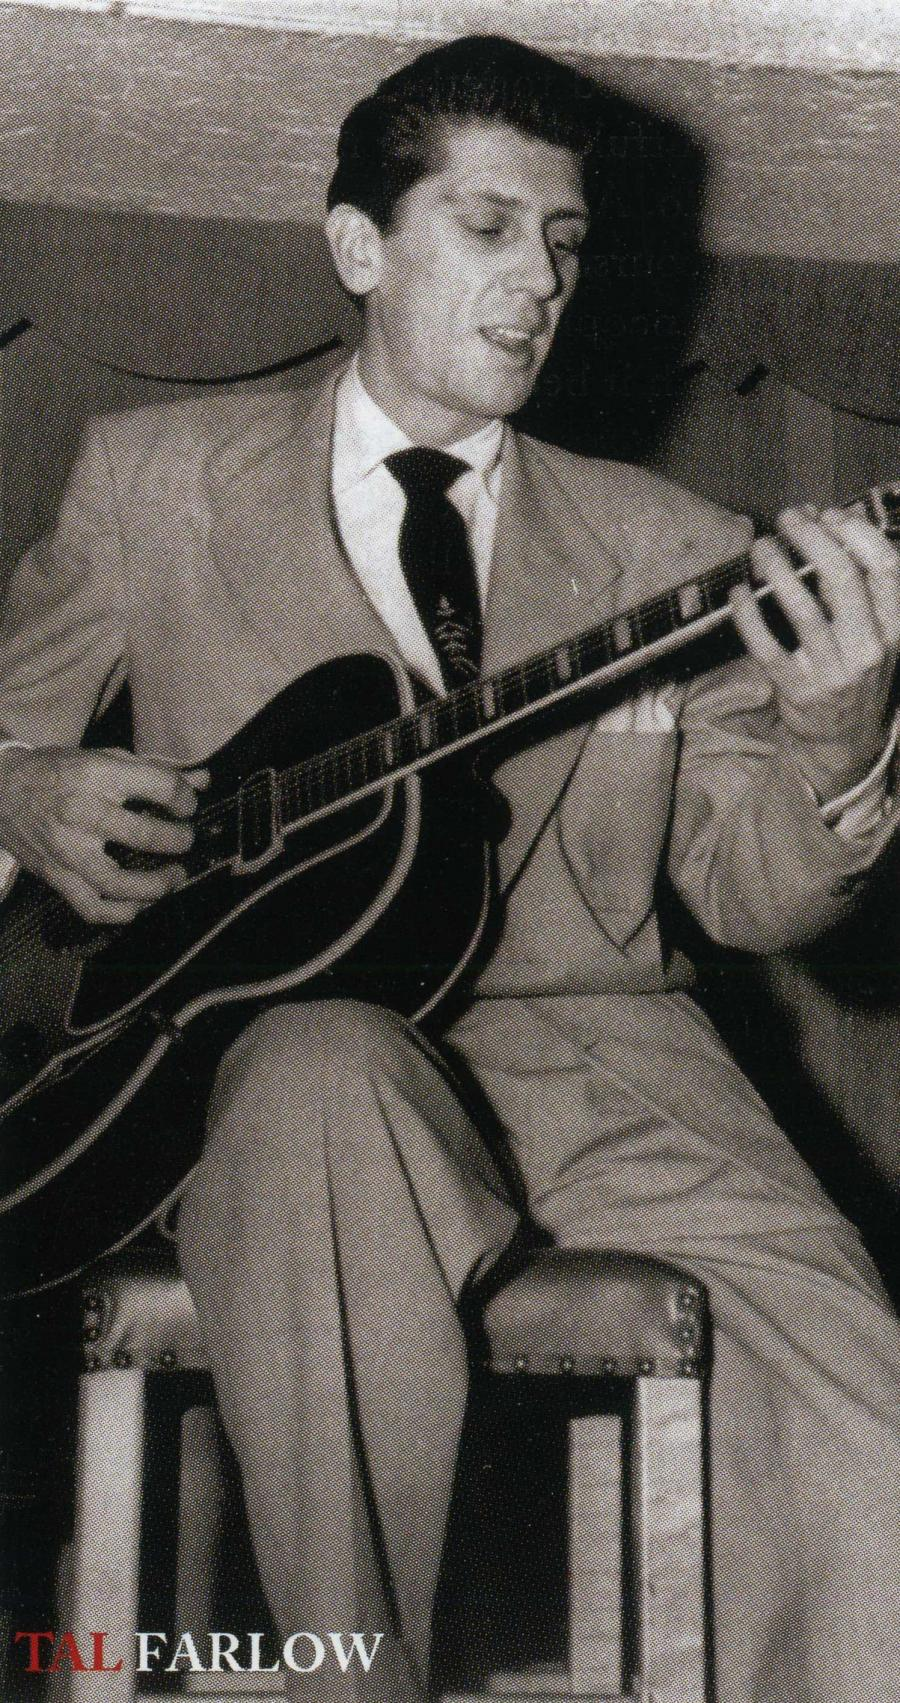 Young Tal Farlow with a ES 150 Charlie Christian like guitar-booklet3-jpg